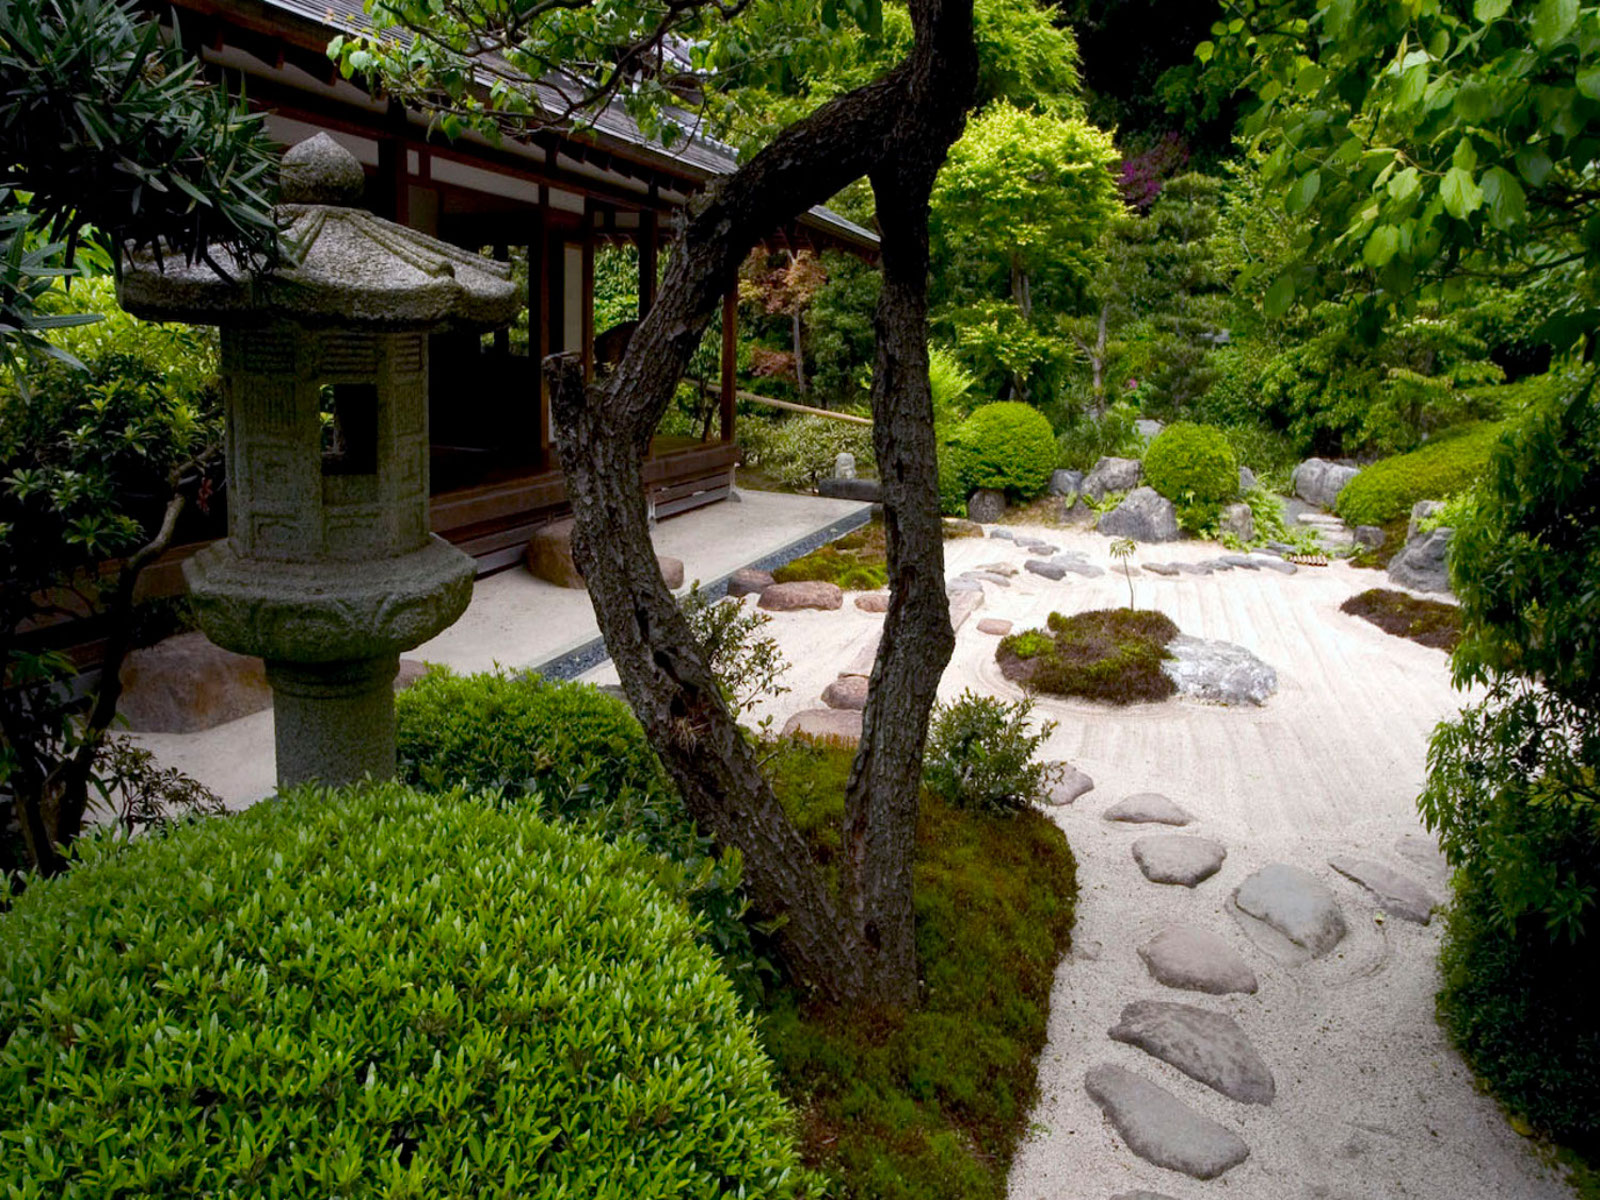 Japanese Garden Wallpapers: Wallpaper Pictures Gallery